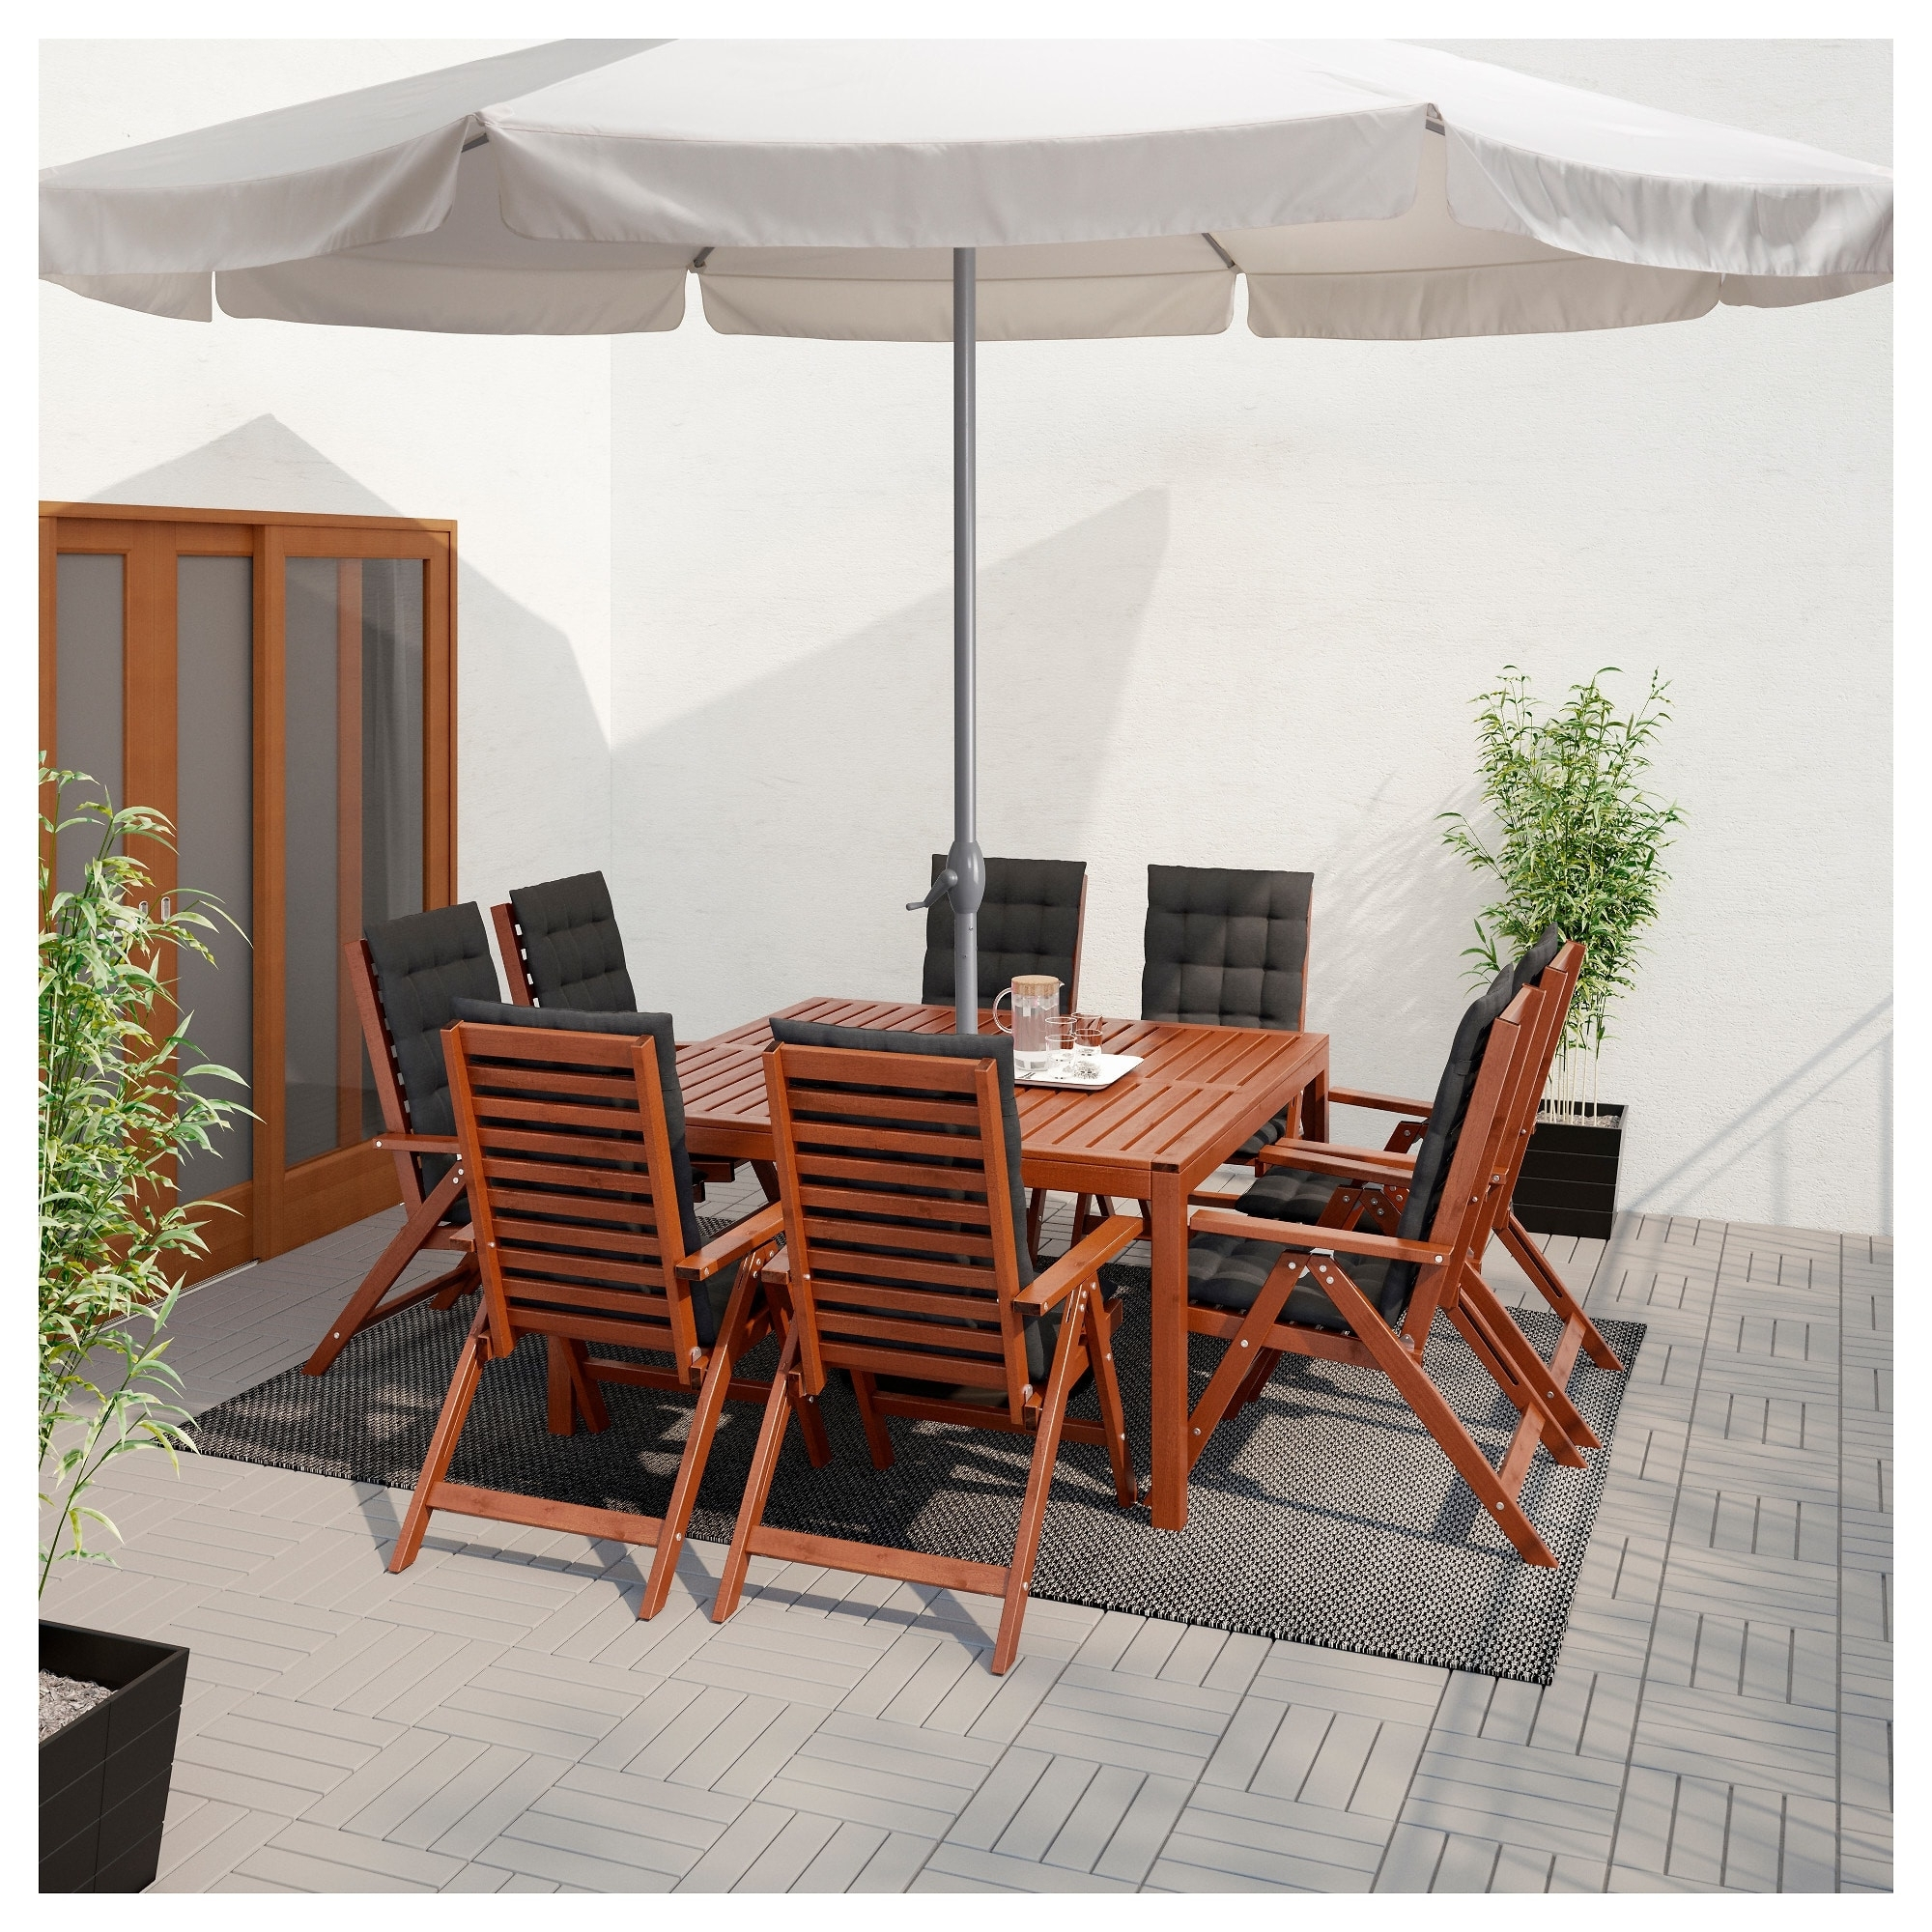 Most Recent Black Canvas Patio Umbrella Inspirational Ljuster– Umbrella Ikea Throughout Ikea Patio Umbrellas (View 16 of 20)